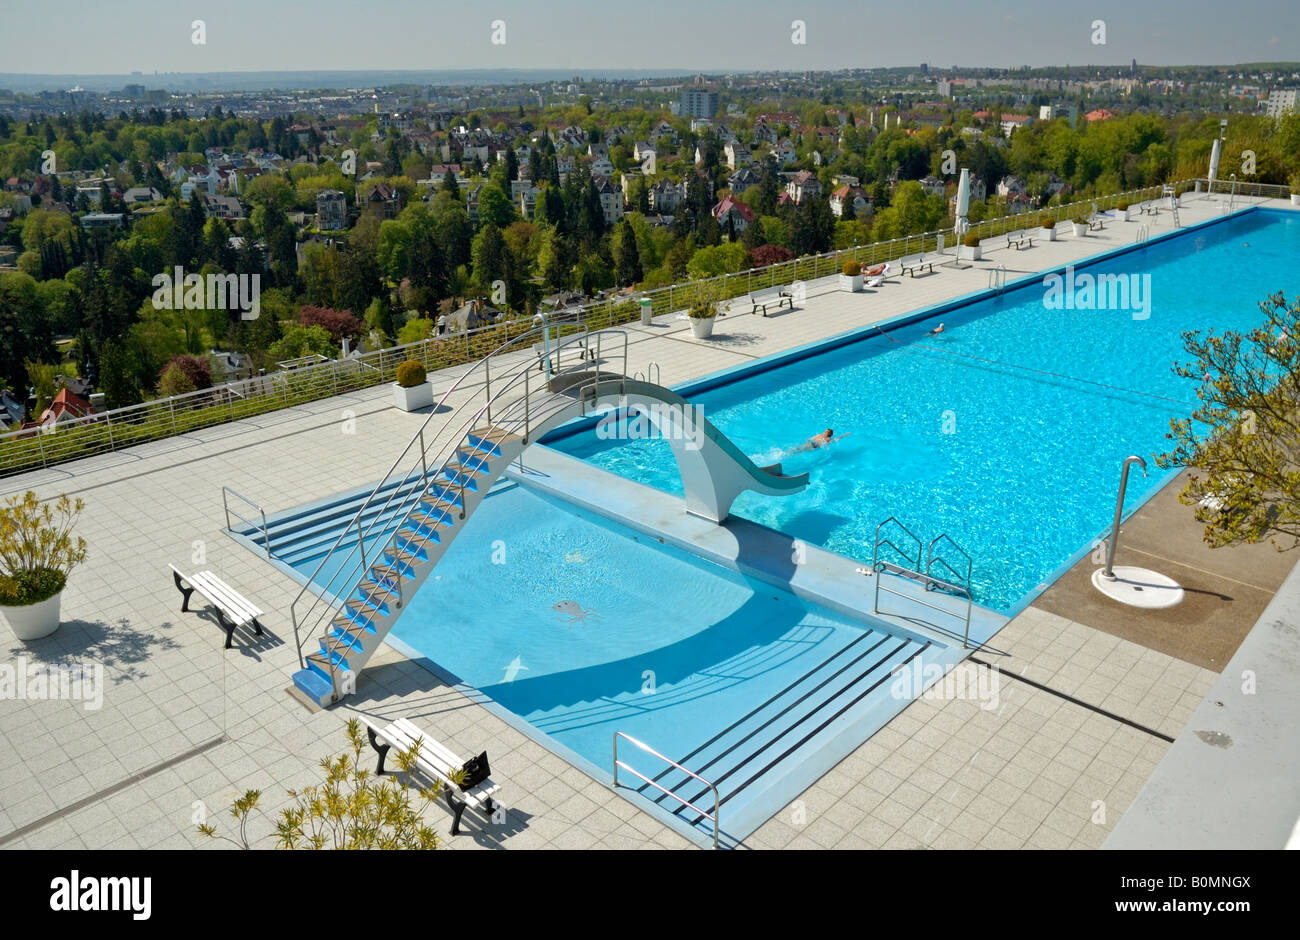 Opel bad swimming pool above the villa district of wiesbaden stock photo 17666346 alamy - Bad homburg swimming pool ...